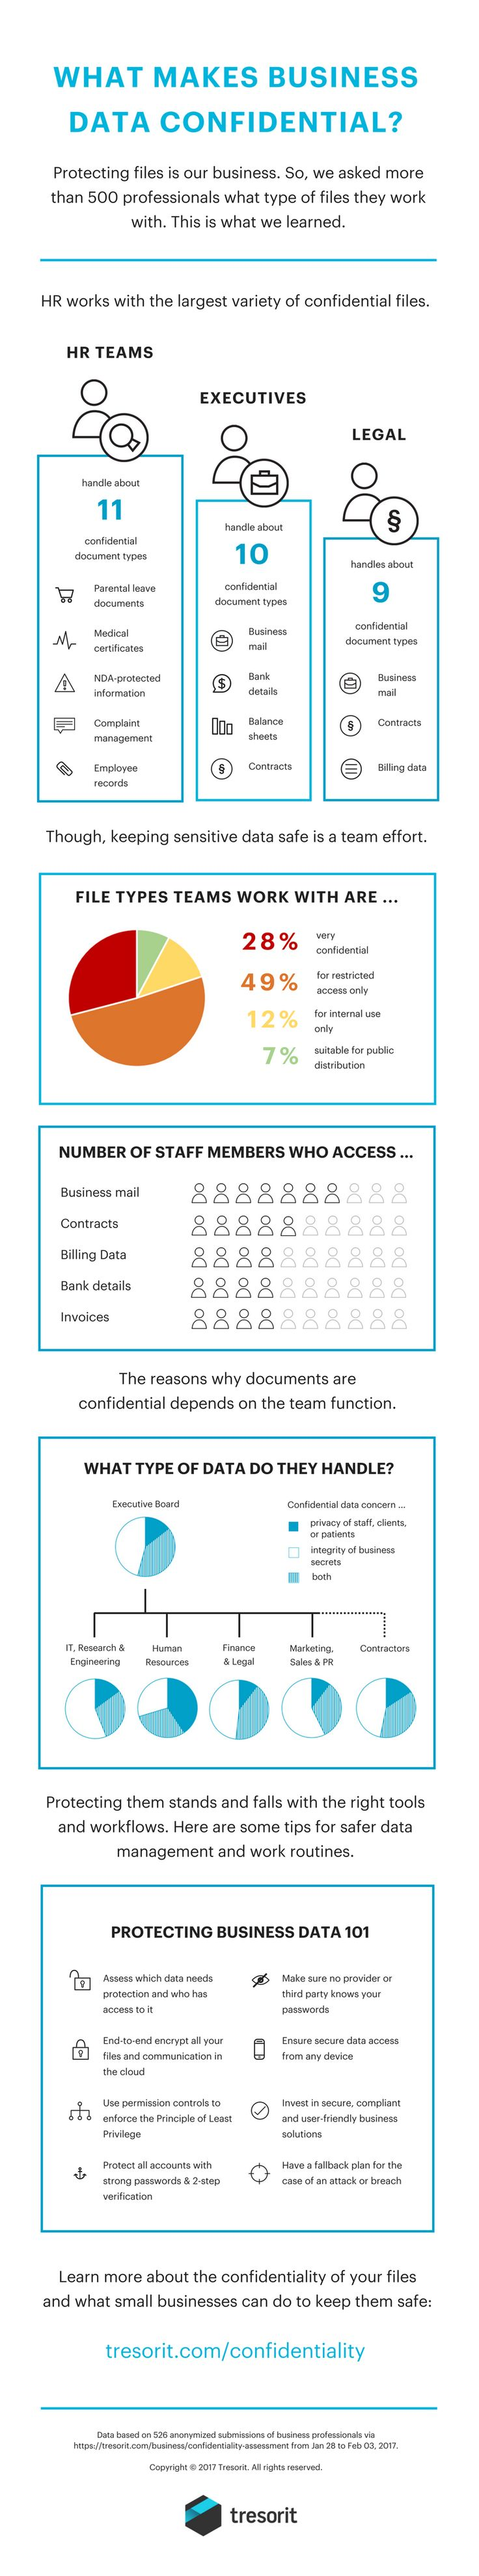 What makes business data confidential? #Infographic #HR teams manage more confidential files than executives